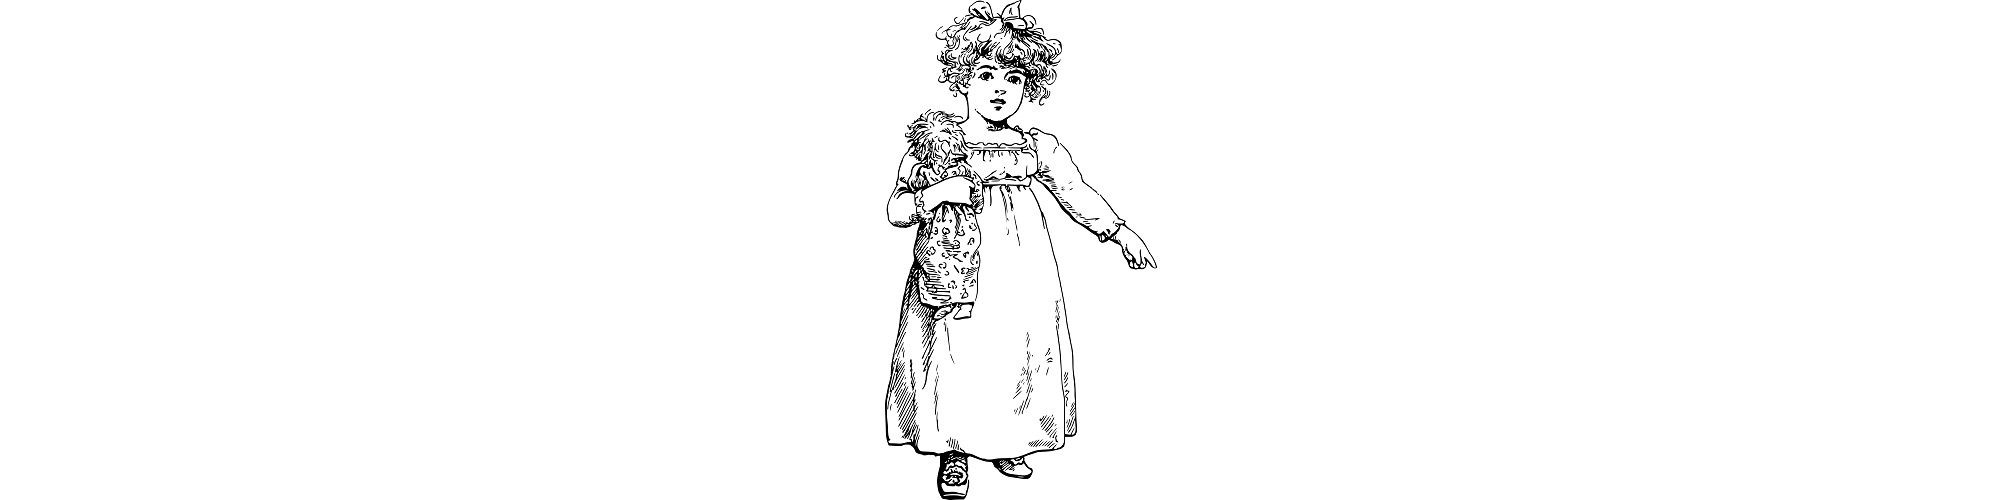 "Illustration of little girl pointing - ""Questions for kids"" flash fiction"